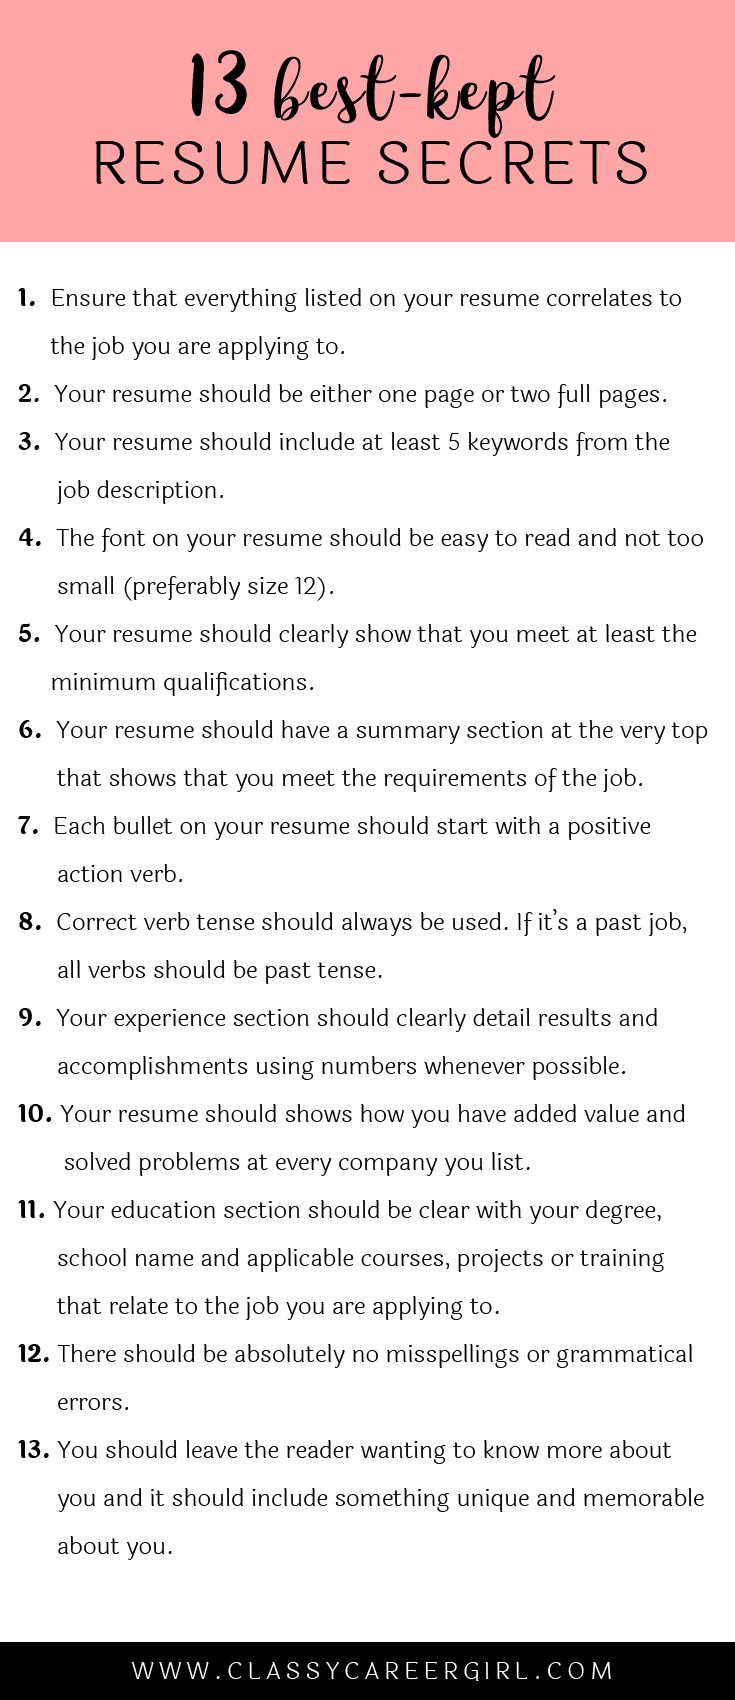 Opposenewapstandardsus  Wonderful  Ideas About Resume On Pinterest  Cv Format Resume Cv And  With Hot Some Hiring Managers Will Toss Your Resume Out If You Dont Know These  With Alluring Film Director Resume Also Bank Resume Examples In Addition Infographics Resume And Harvard Resume Format As Well As How To Write A Strong Resume Additionally Acting Resume With No Experience From Pinterestcom With Opposenewapstandardsus  Hot  Ideas About Resume On Pinterest  Cv Format Resume Cv And  With Alluring Some Hiring Managers Will Toss Your Resume Out If You Dont Know These  And Wonderful Film Director Resume Also Bank Resume Examples In Addition Infographics Resume From Pinterestcom